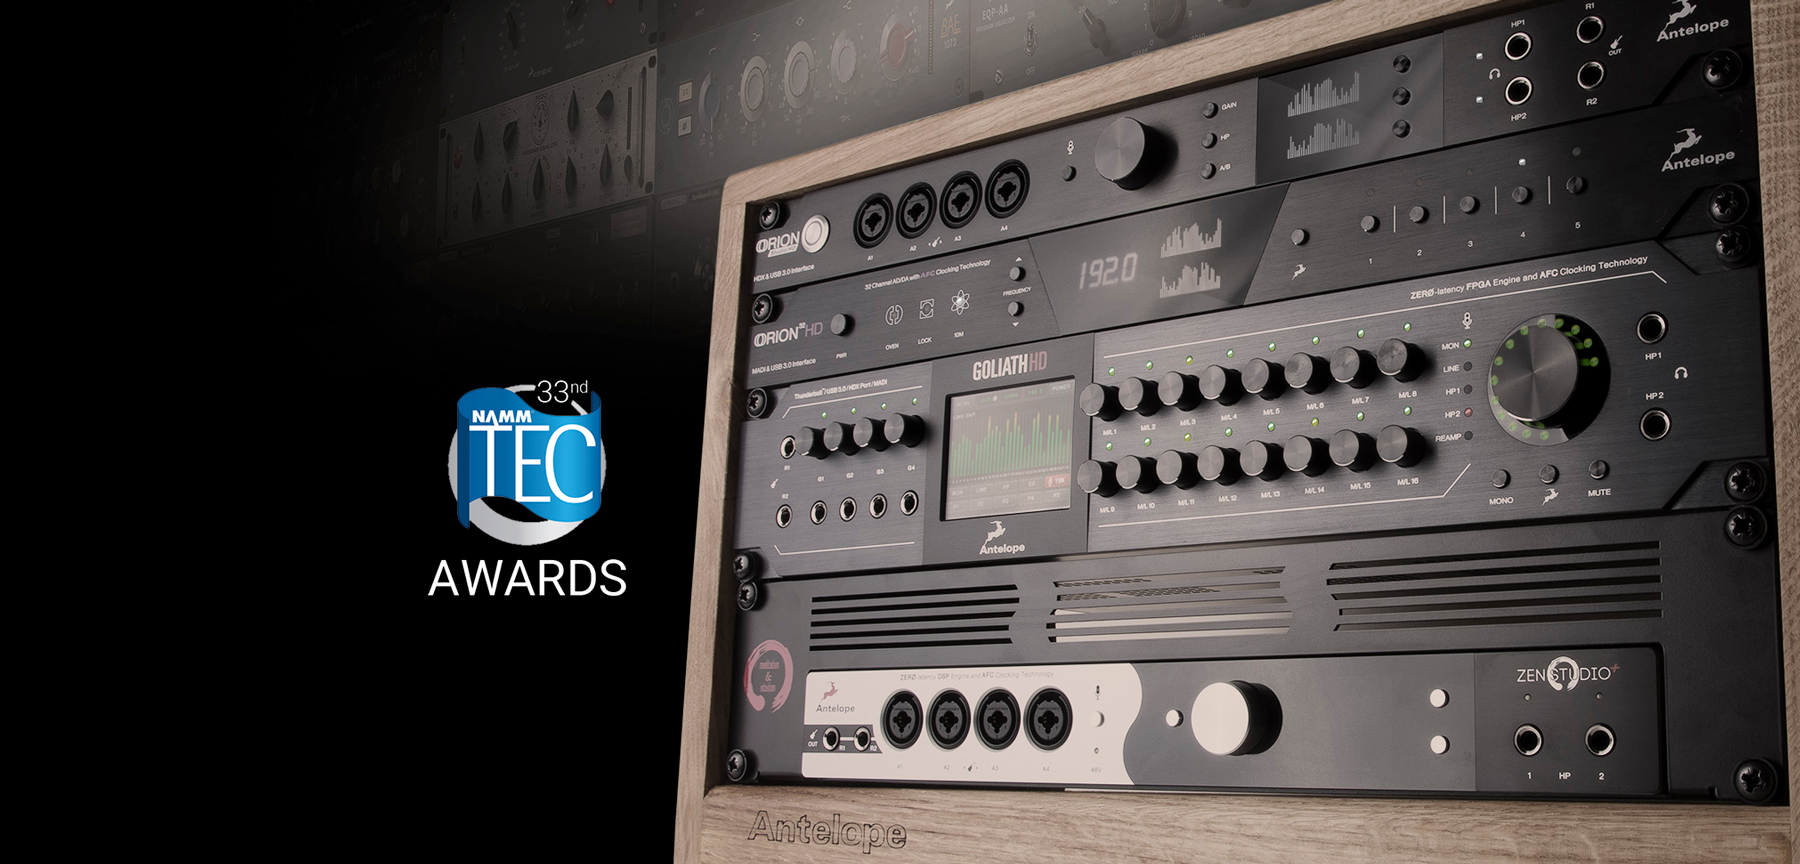 Four NAMM TEC Awards nominations for Antelope Audio in 2017